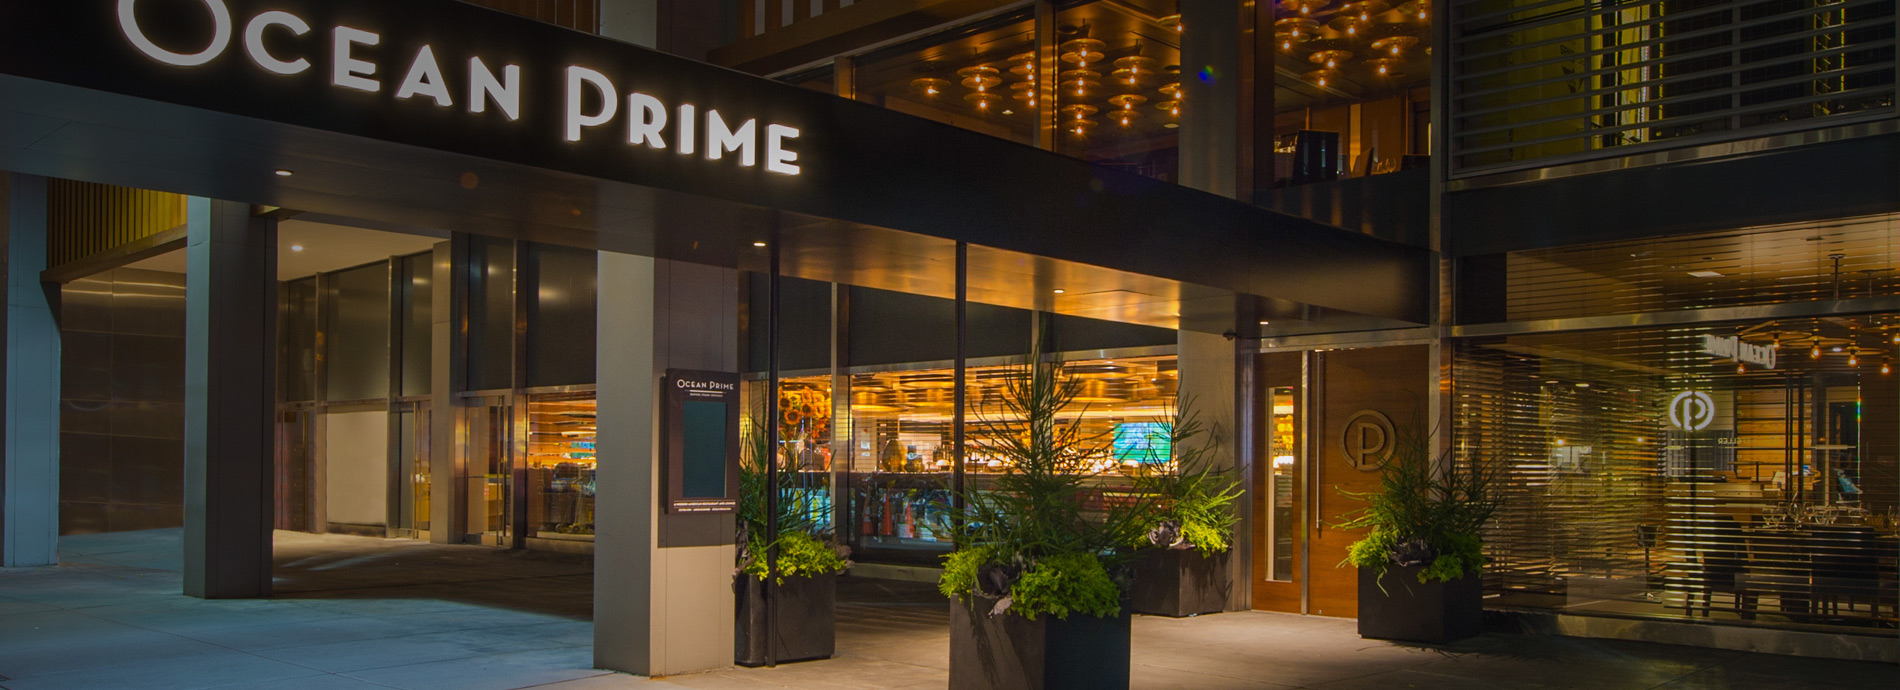 Exterior Of Ocean Prime New York City